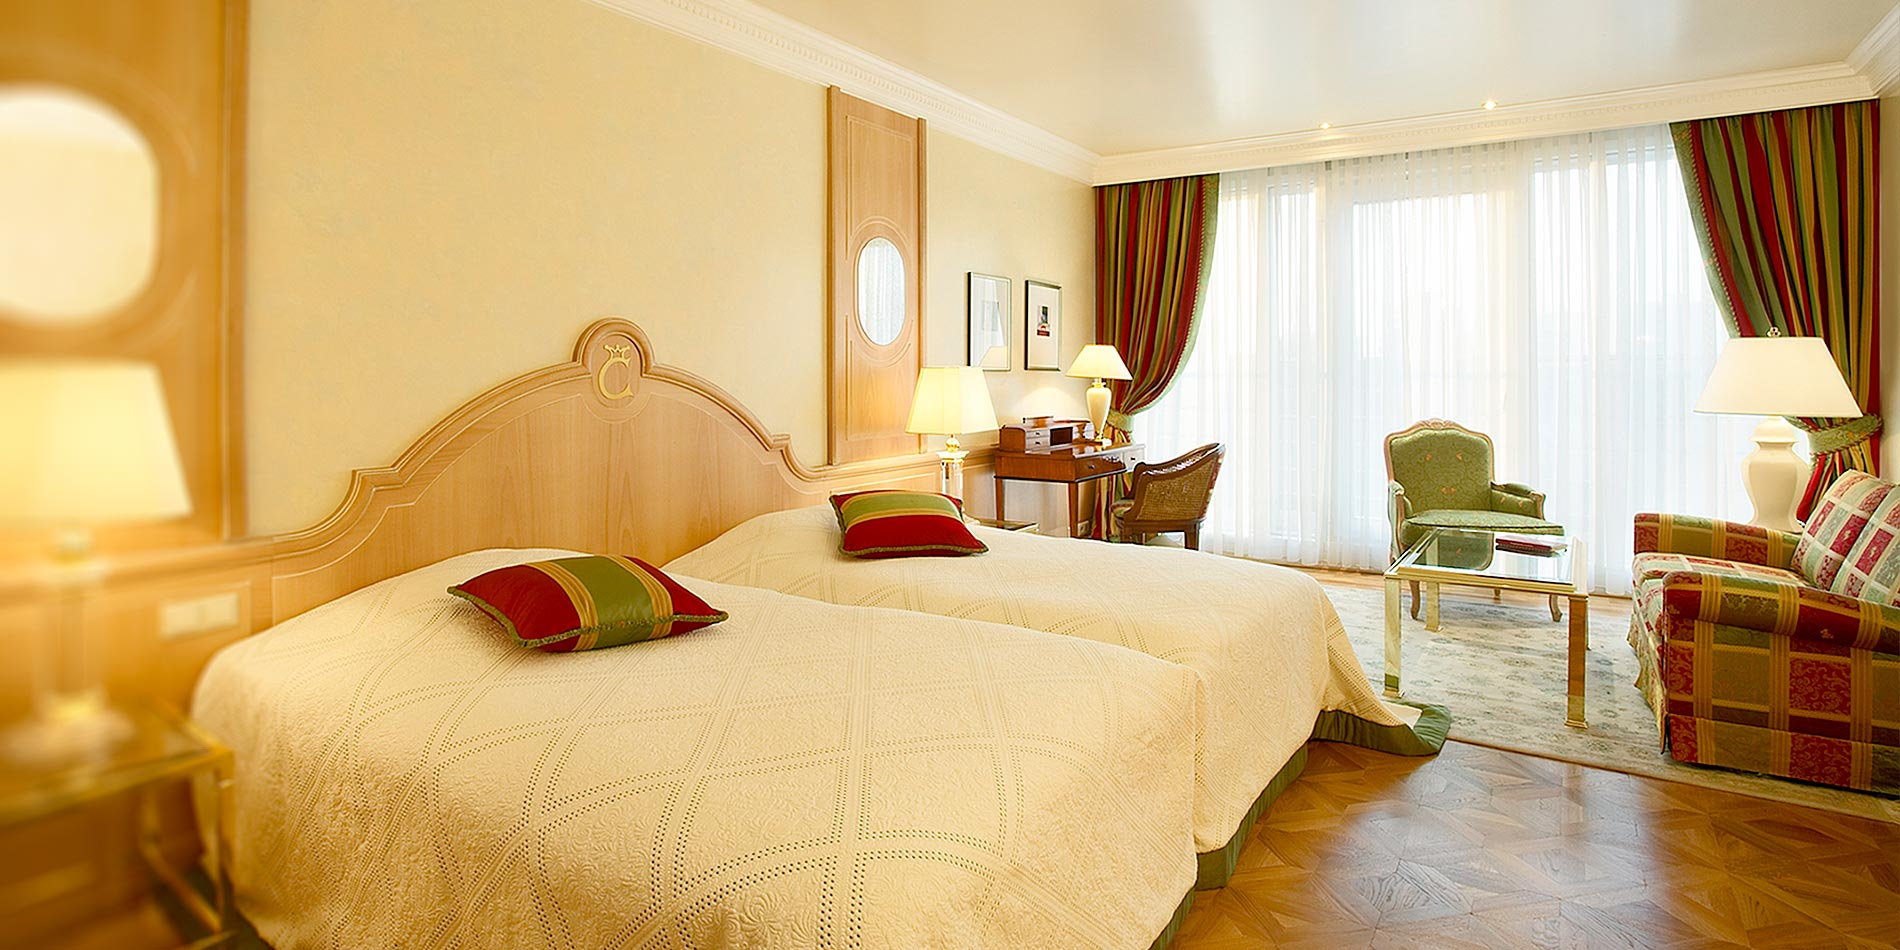 Colombi Hotel Freiburg Rooms And Suites